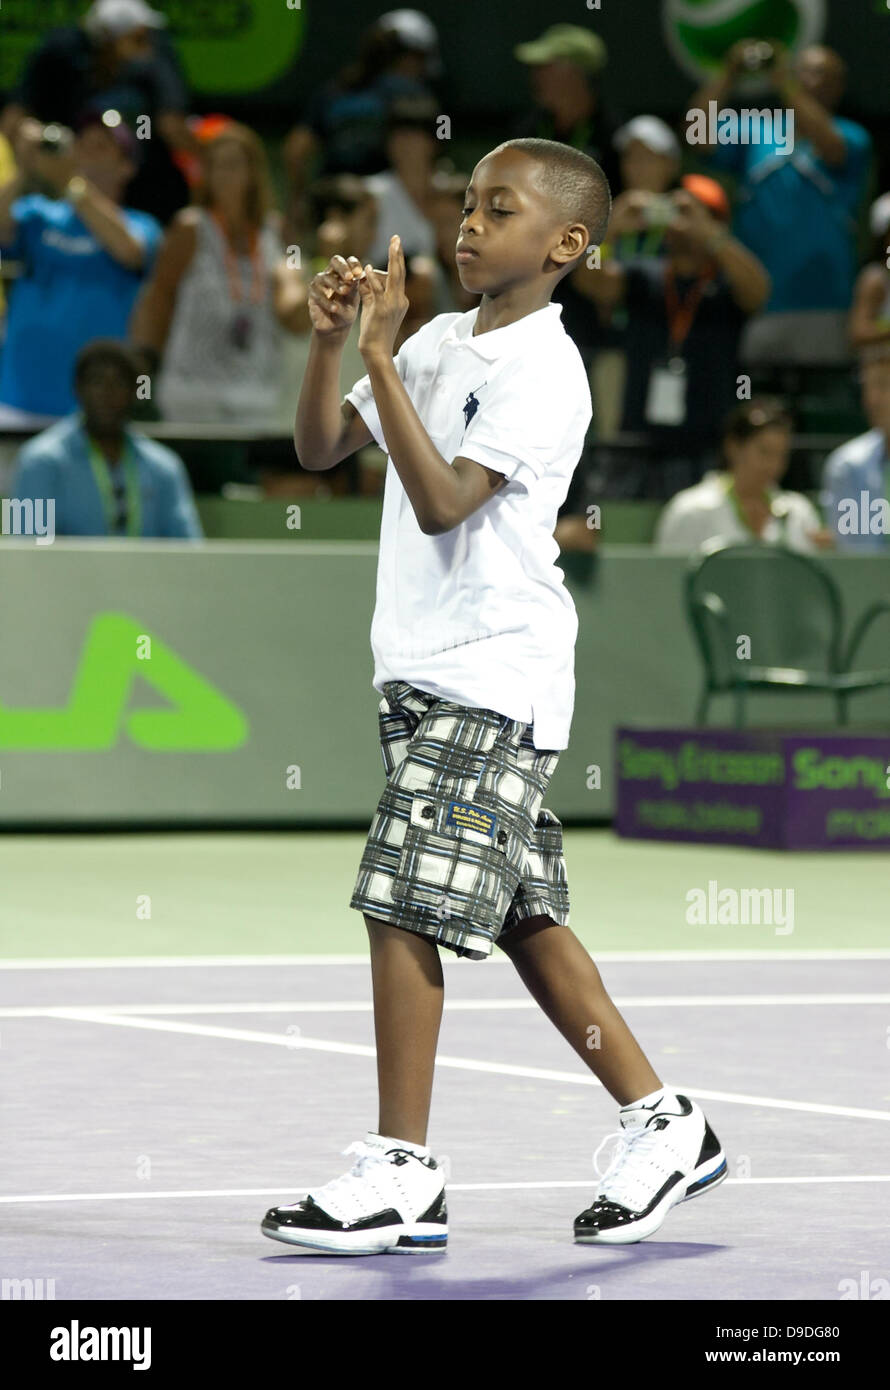 Miami Heat's Dwayne Wade's son Zaire does the coin toss before the 2011 Sony Ericsson Open at Crandon Park - Stock Image